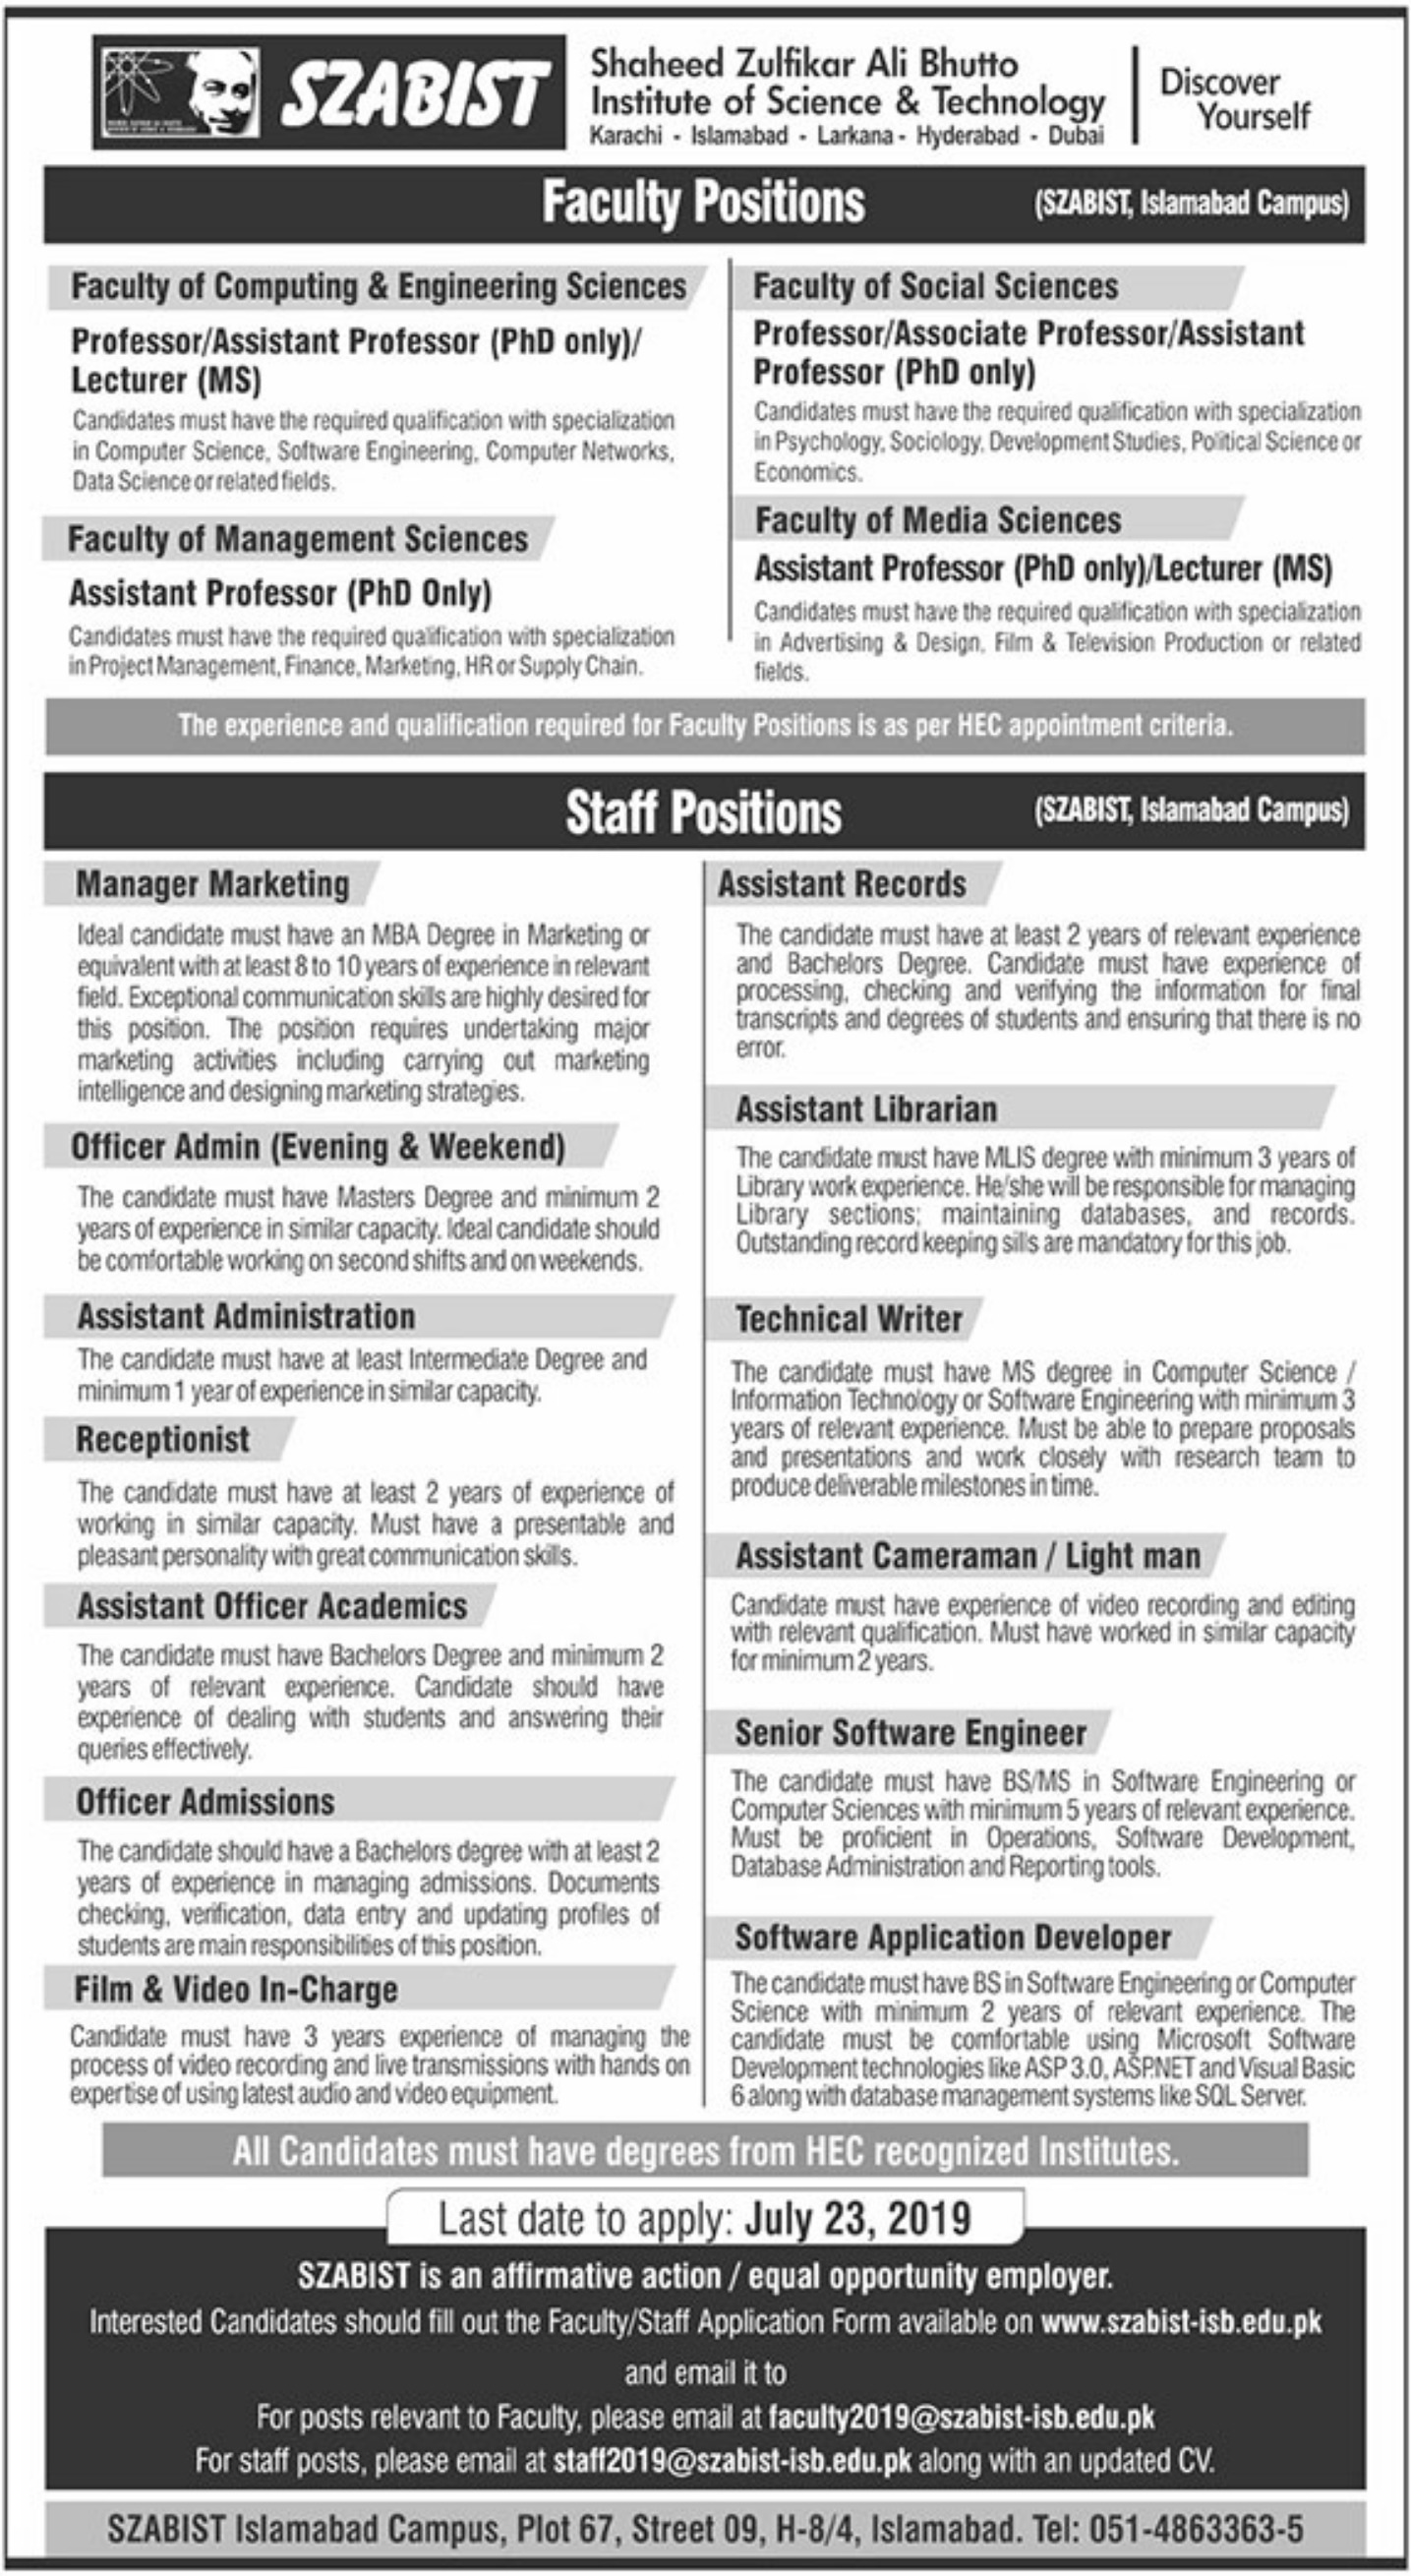 Shaheed Zulfikar Ali Bhutto Institute of Science & Technology SZABIST Jobs 2019